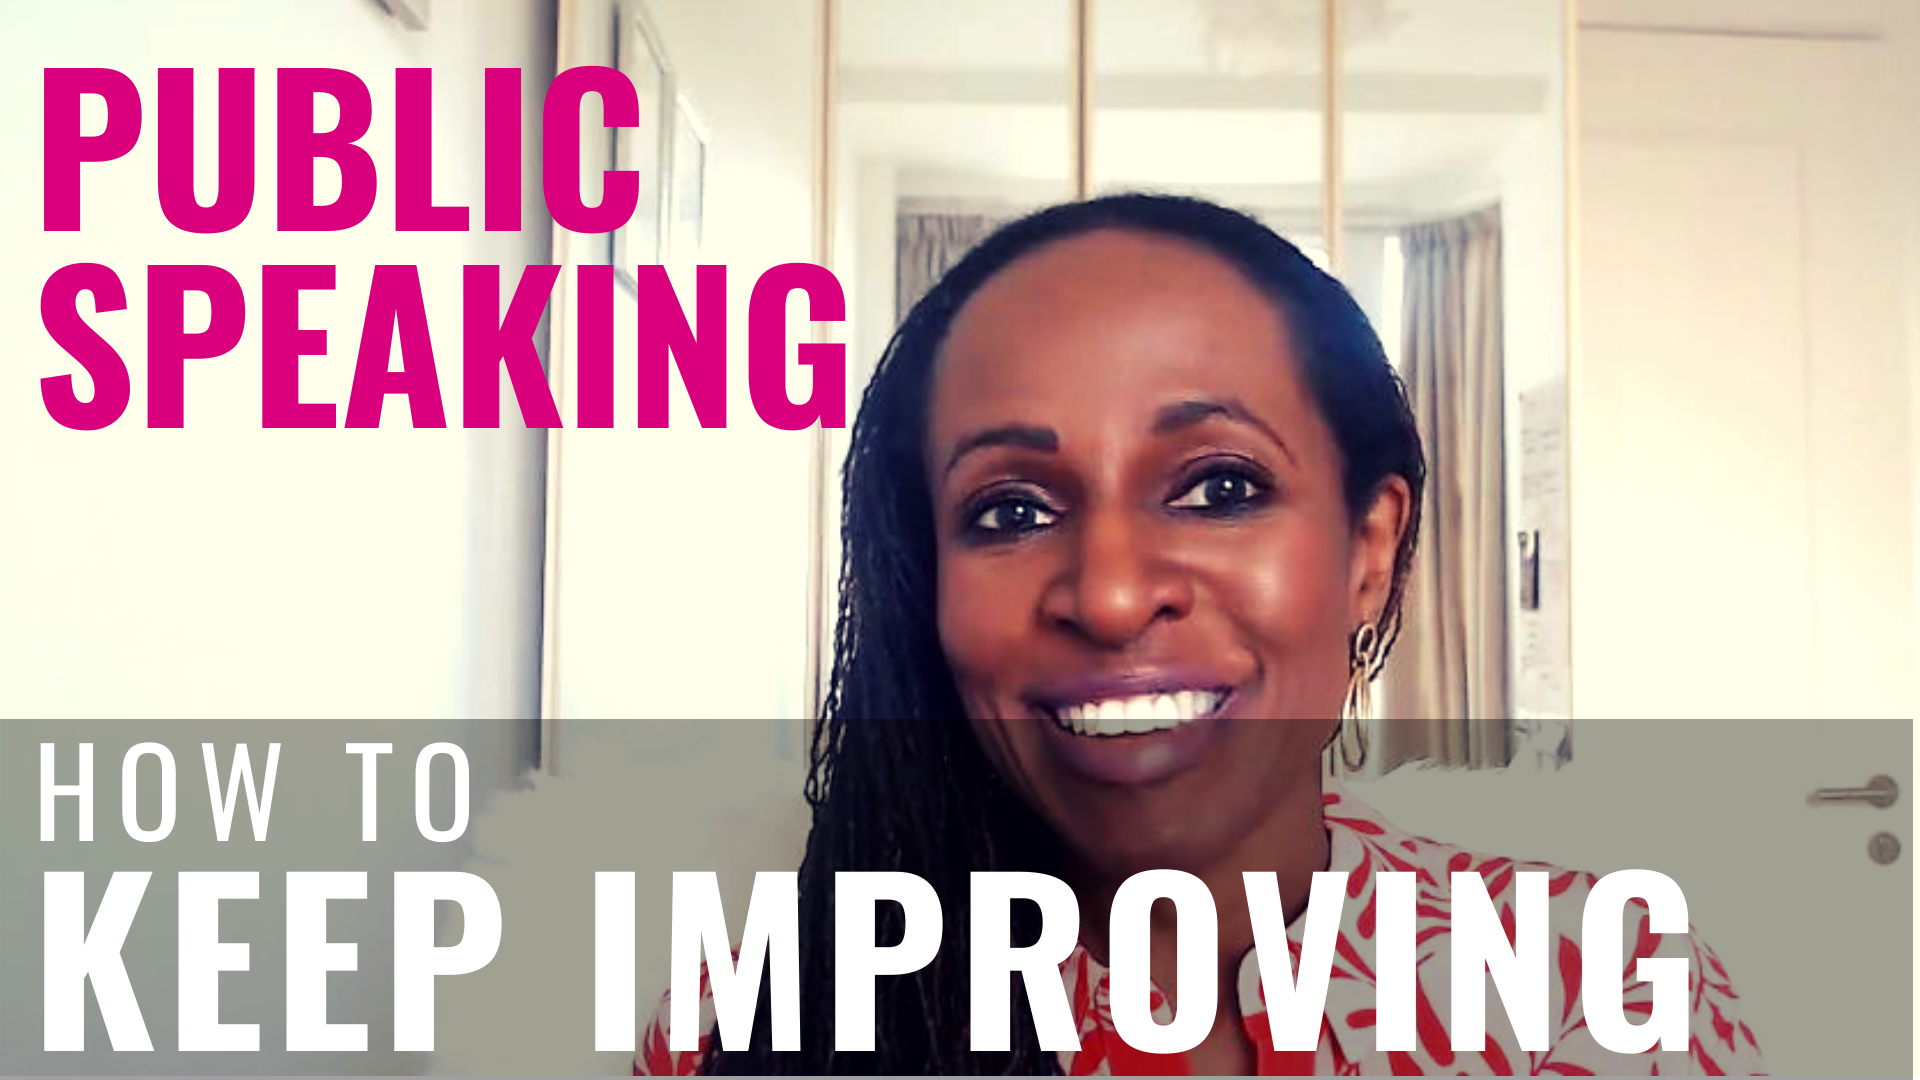 PUBLIC SPEAKING - How to KEEP IMPROVING